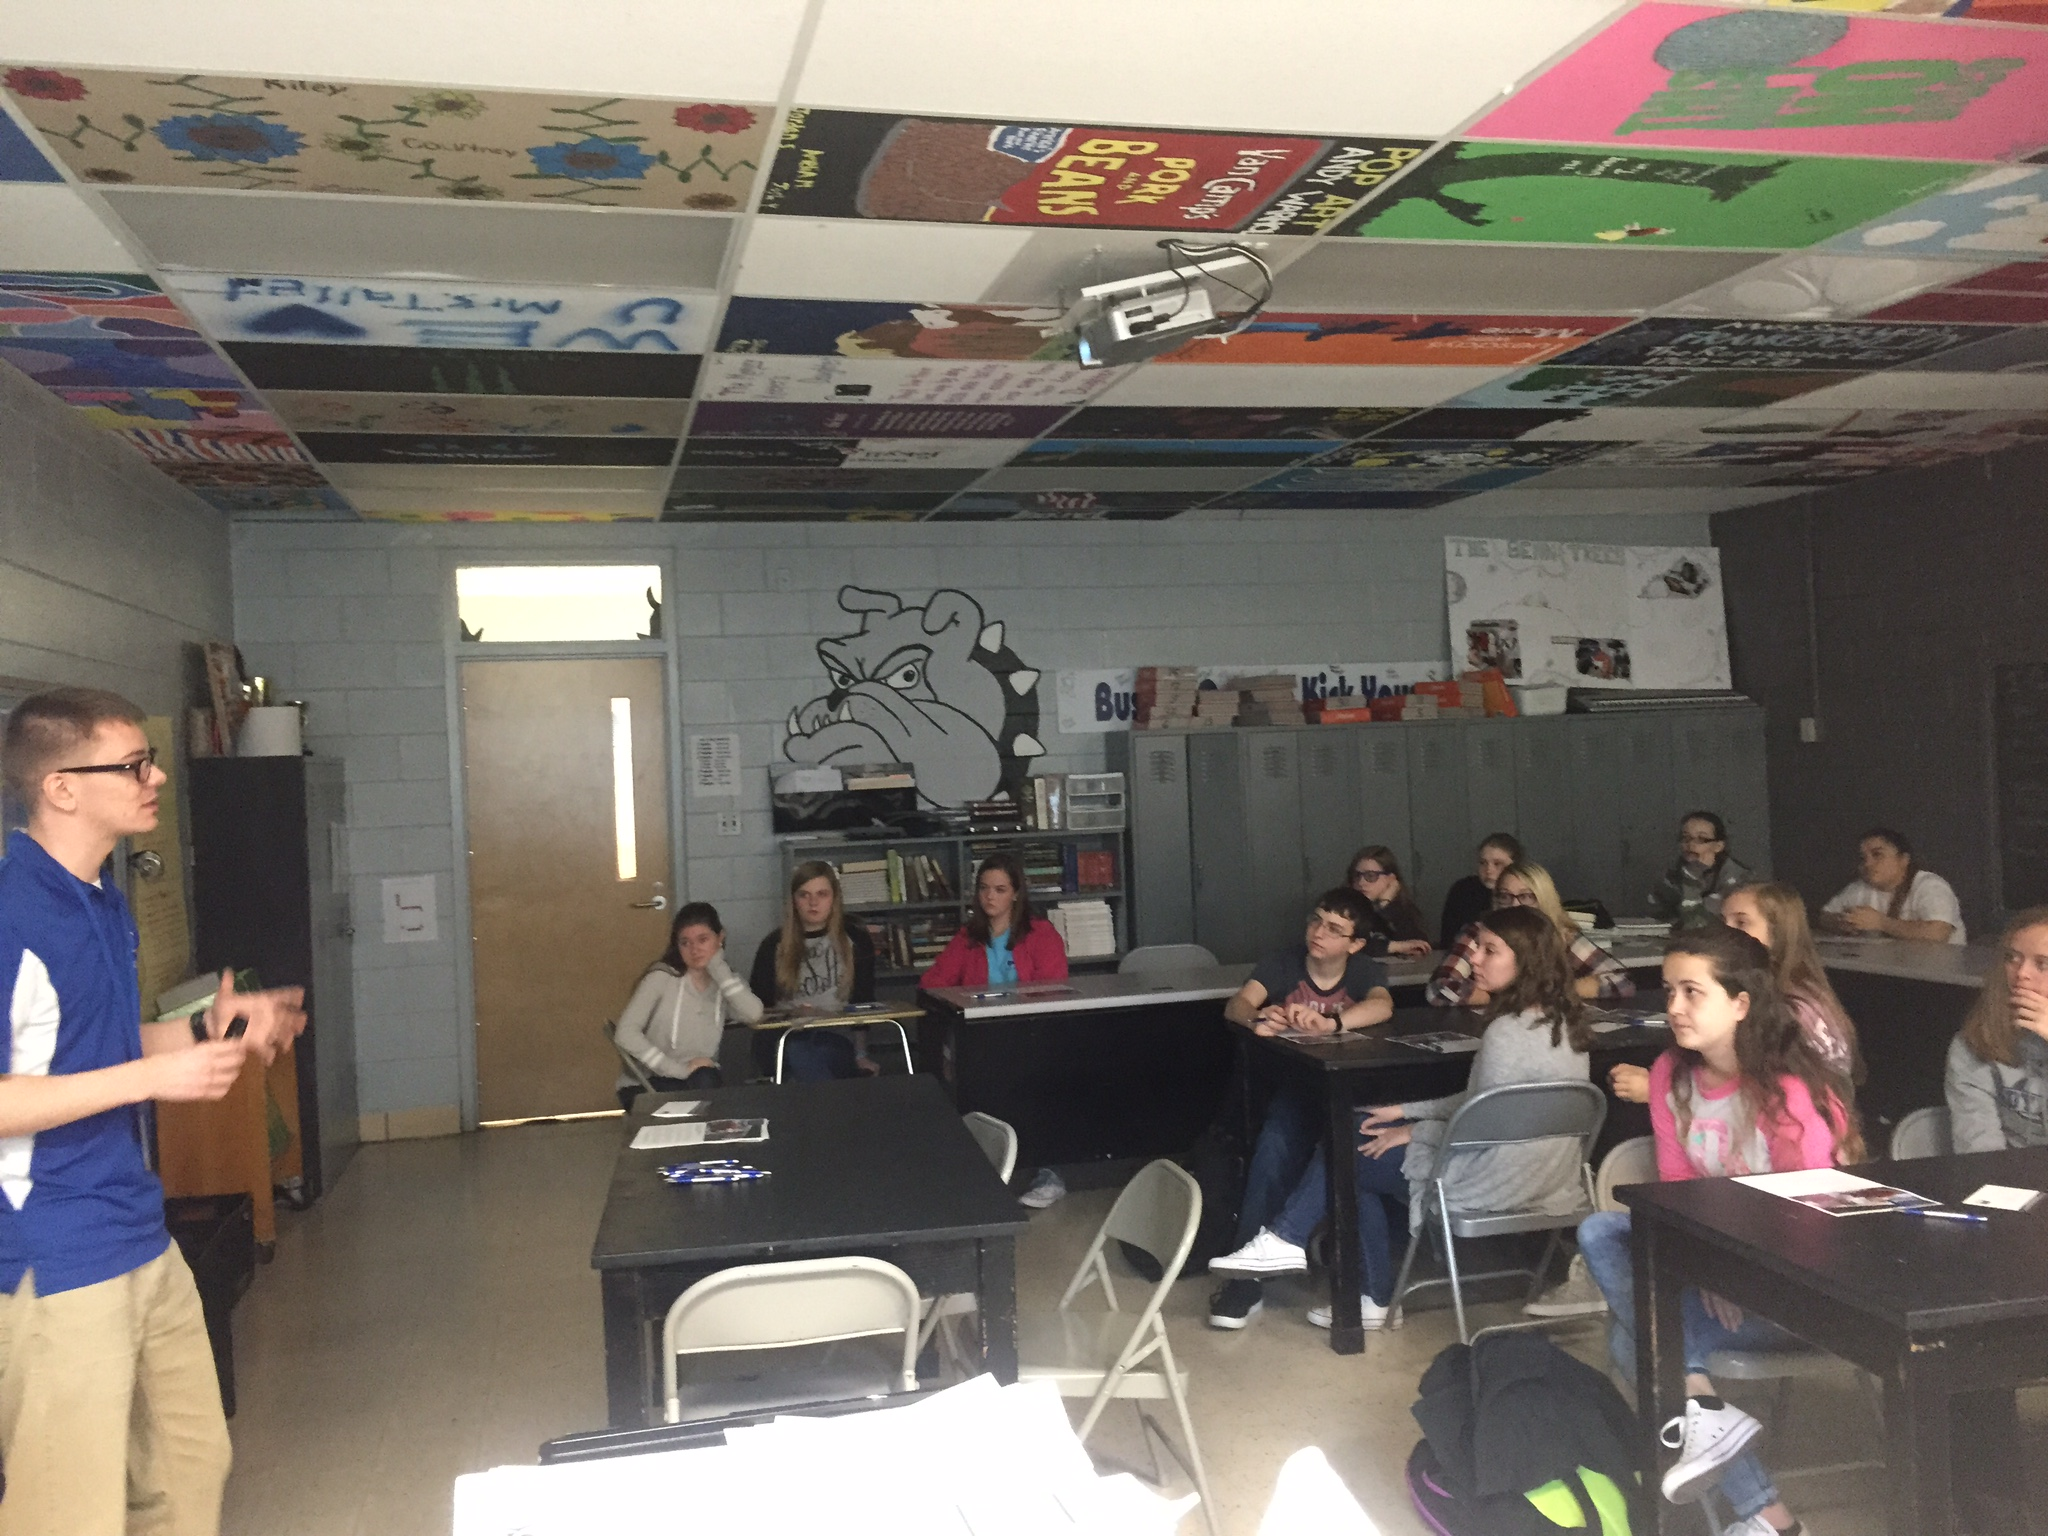 A representative from Craft Academy for Excellence in Science and Mathematics at Morehead State University visited CCHS on Tuesday, January 18th.